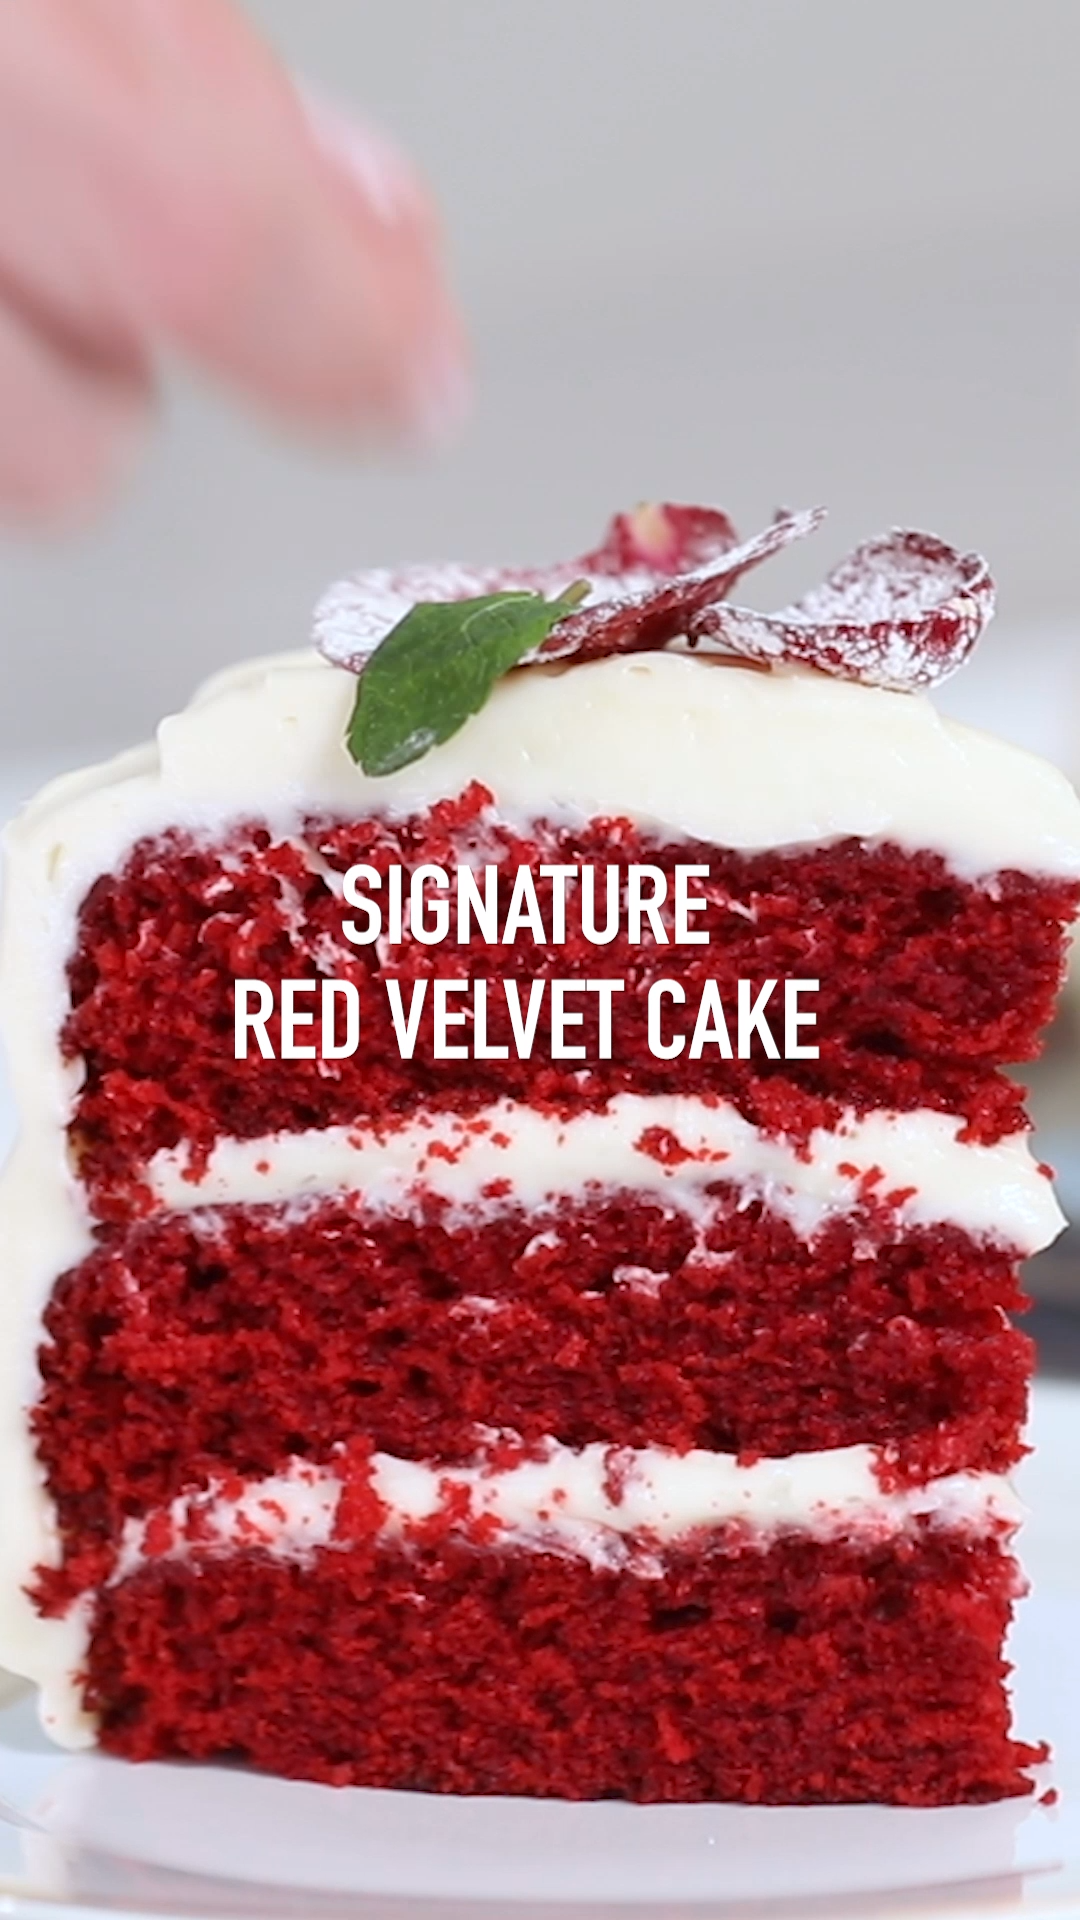 Seperate layers .mix 1.can sweet condensed milk 1.C.orange/pineapple juice 1. box jello red velvet.pock tooth pick holes in the cake and let if absorb.TOP with cream cheese frosting..